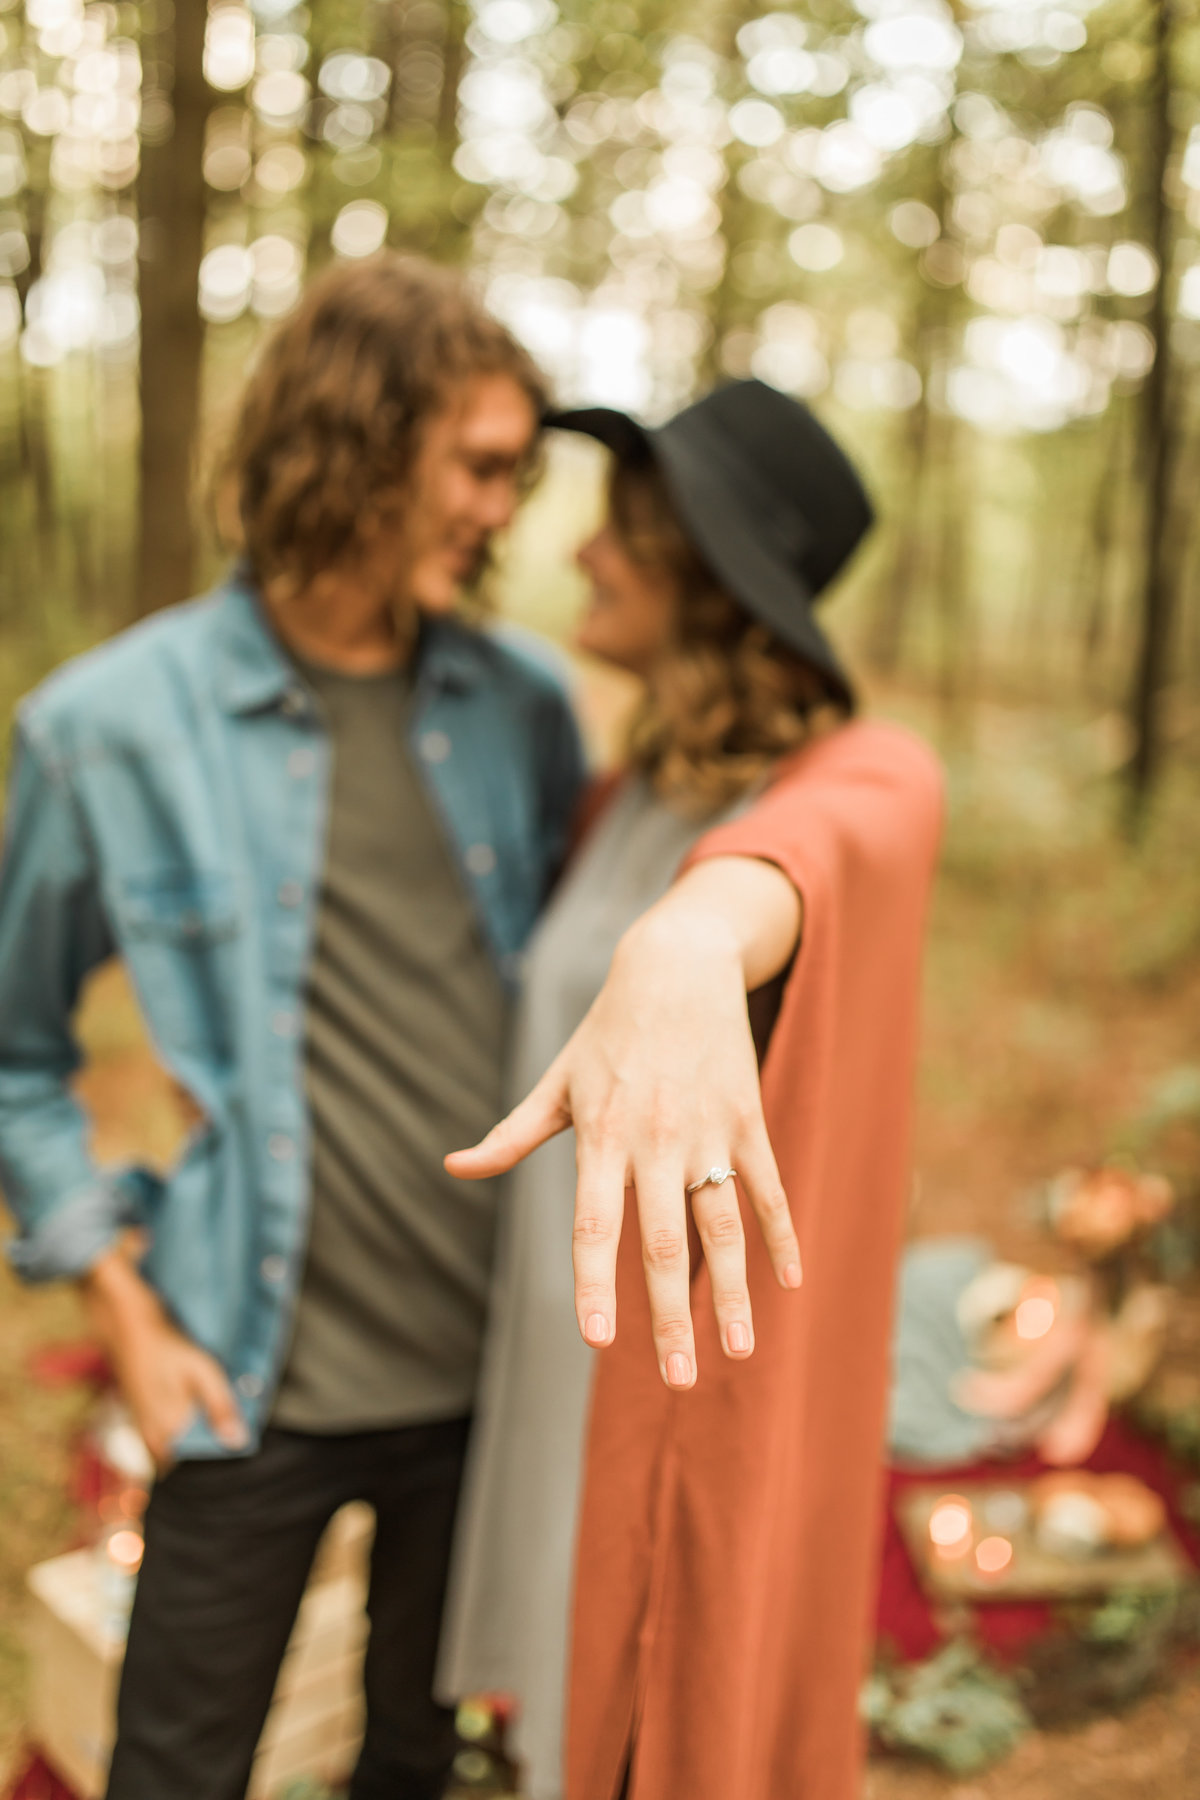 Busch Wildlife  Defiance, MO  Fall Picnic Colorado Themed Surpise Proposal  Cameron + Mikayla  Allison Slater Photography258